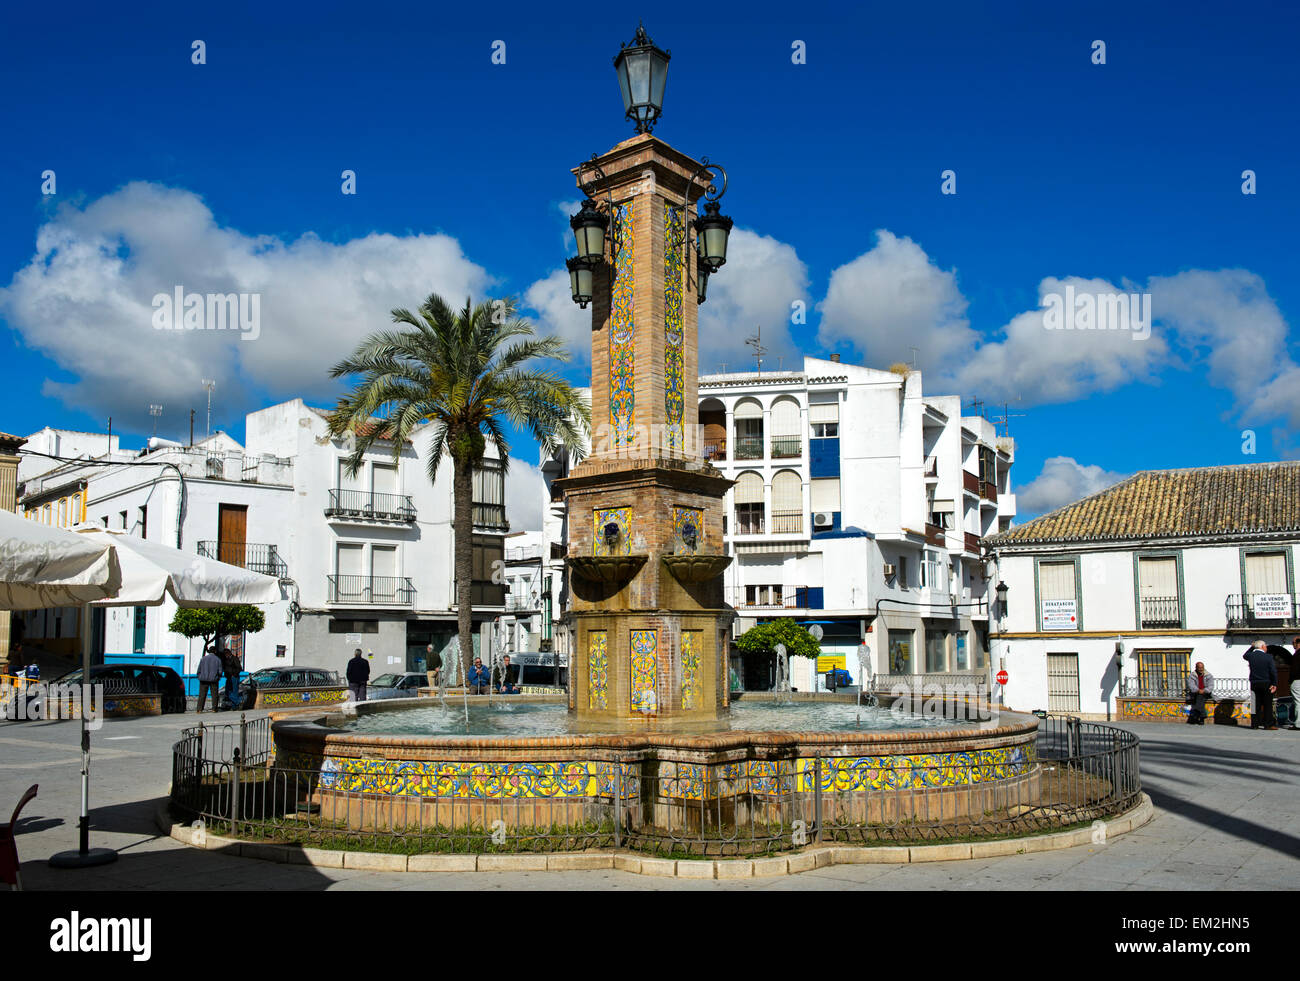 Central Square, fountain, Villa Martin, Andalucía, Spain - Stock Image